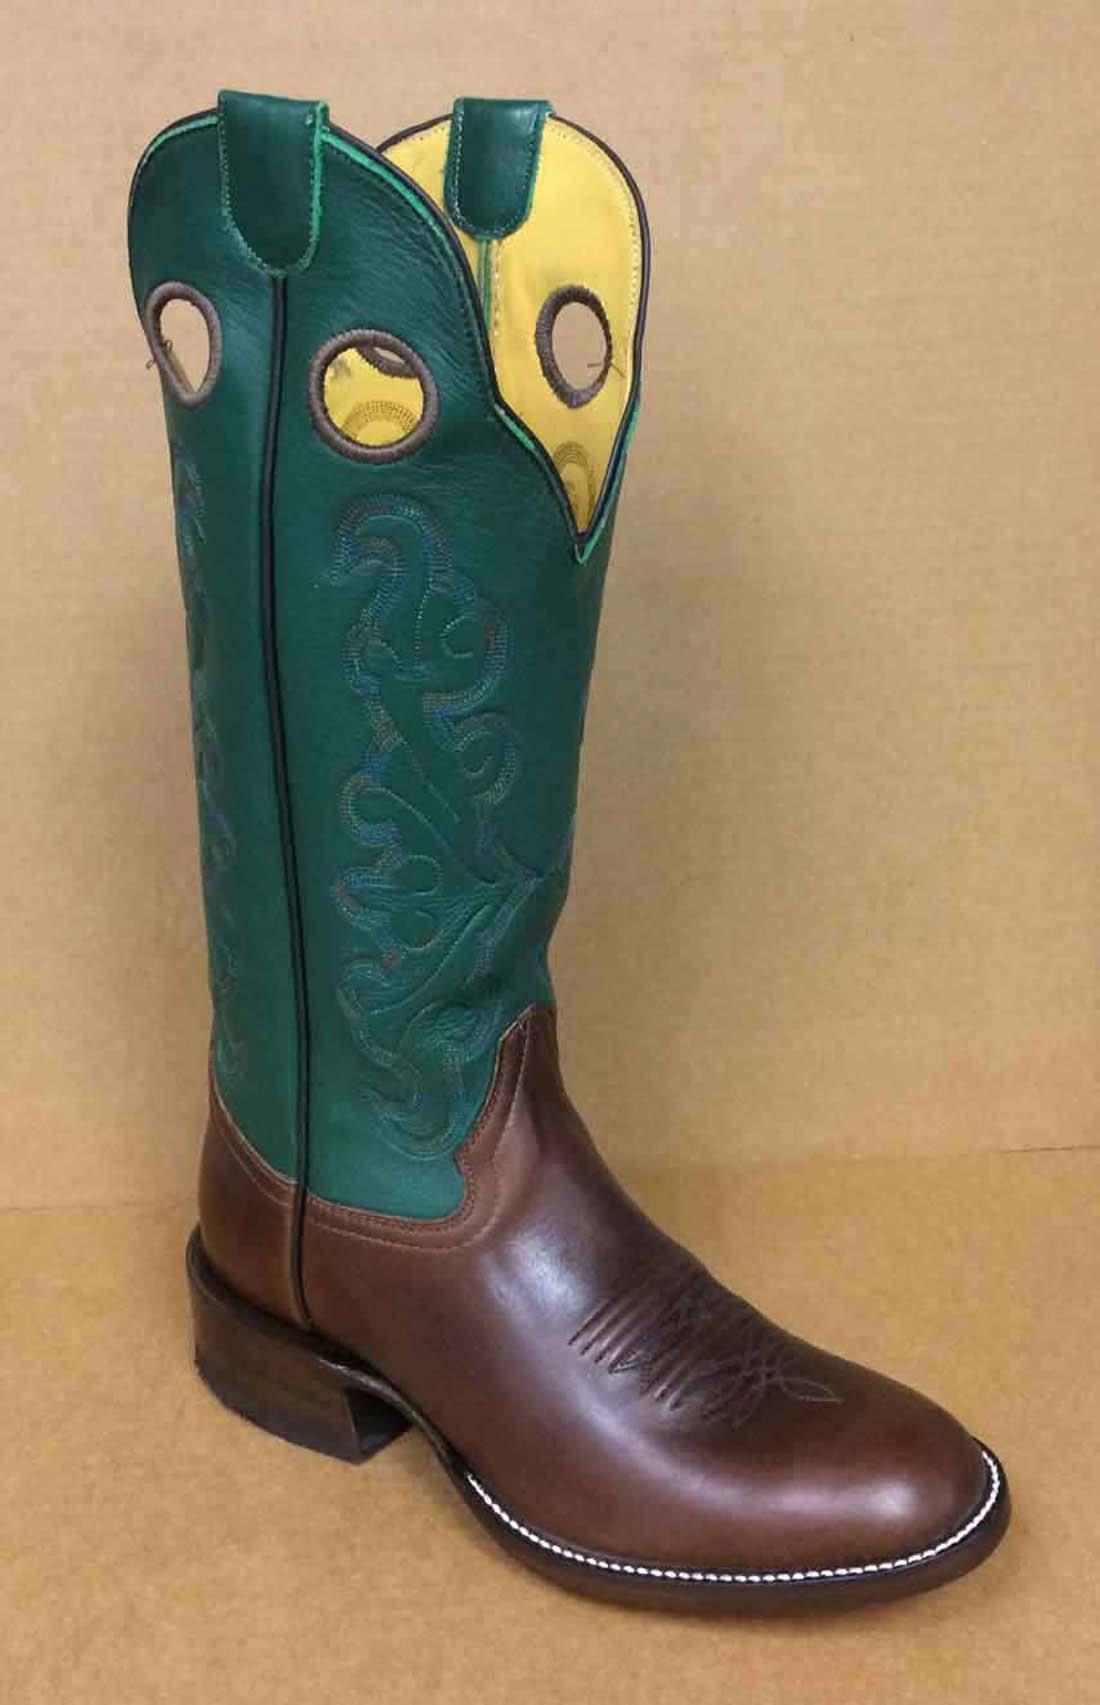 We have this boot made with a dark green 14